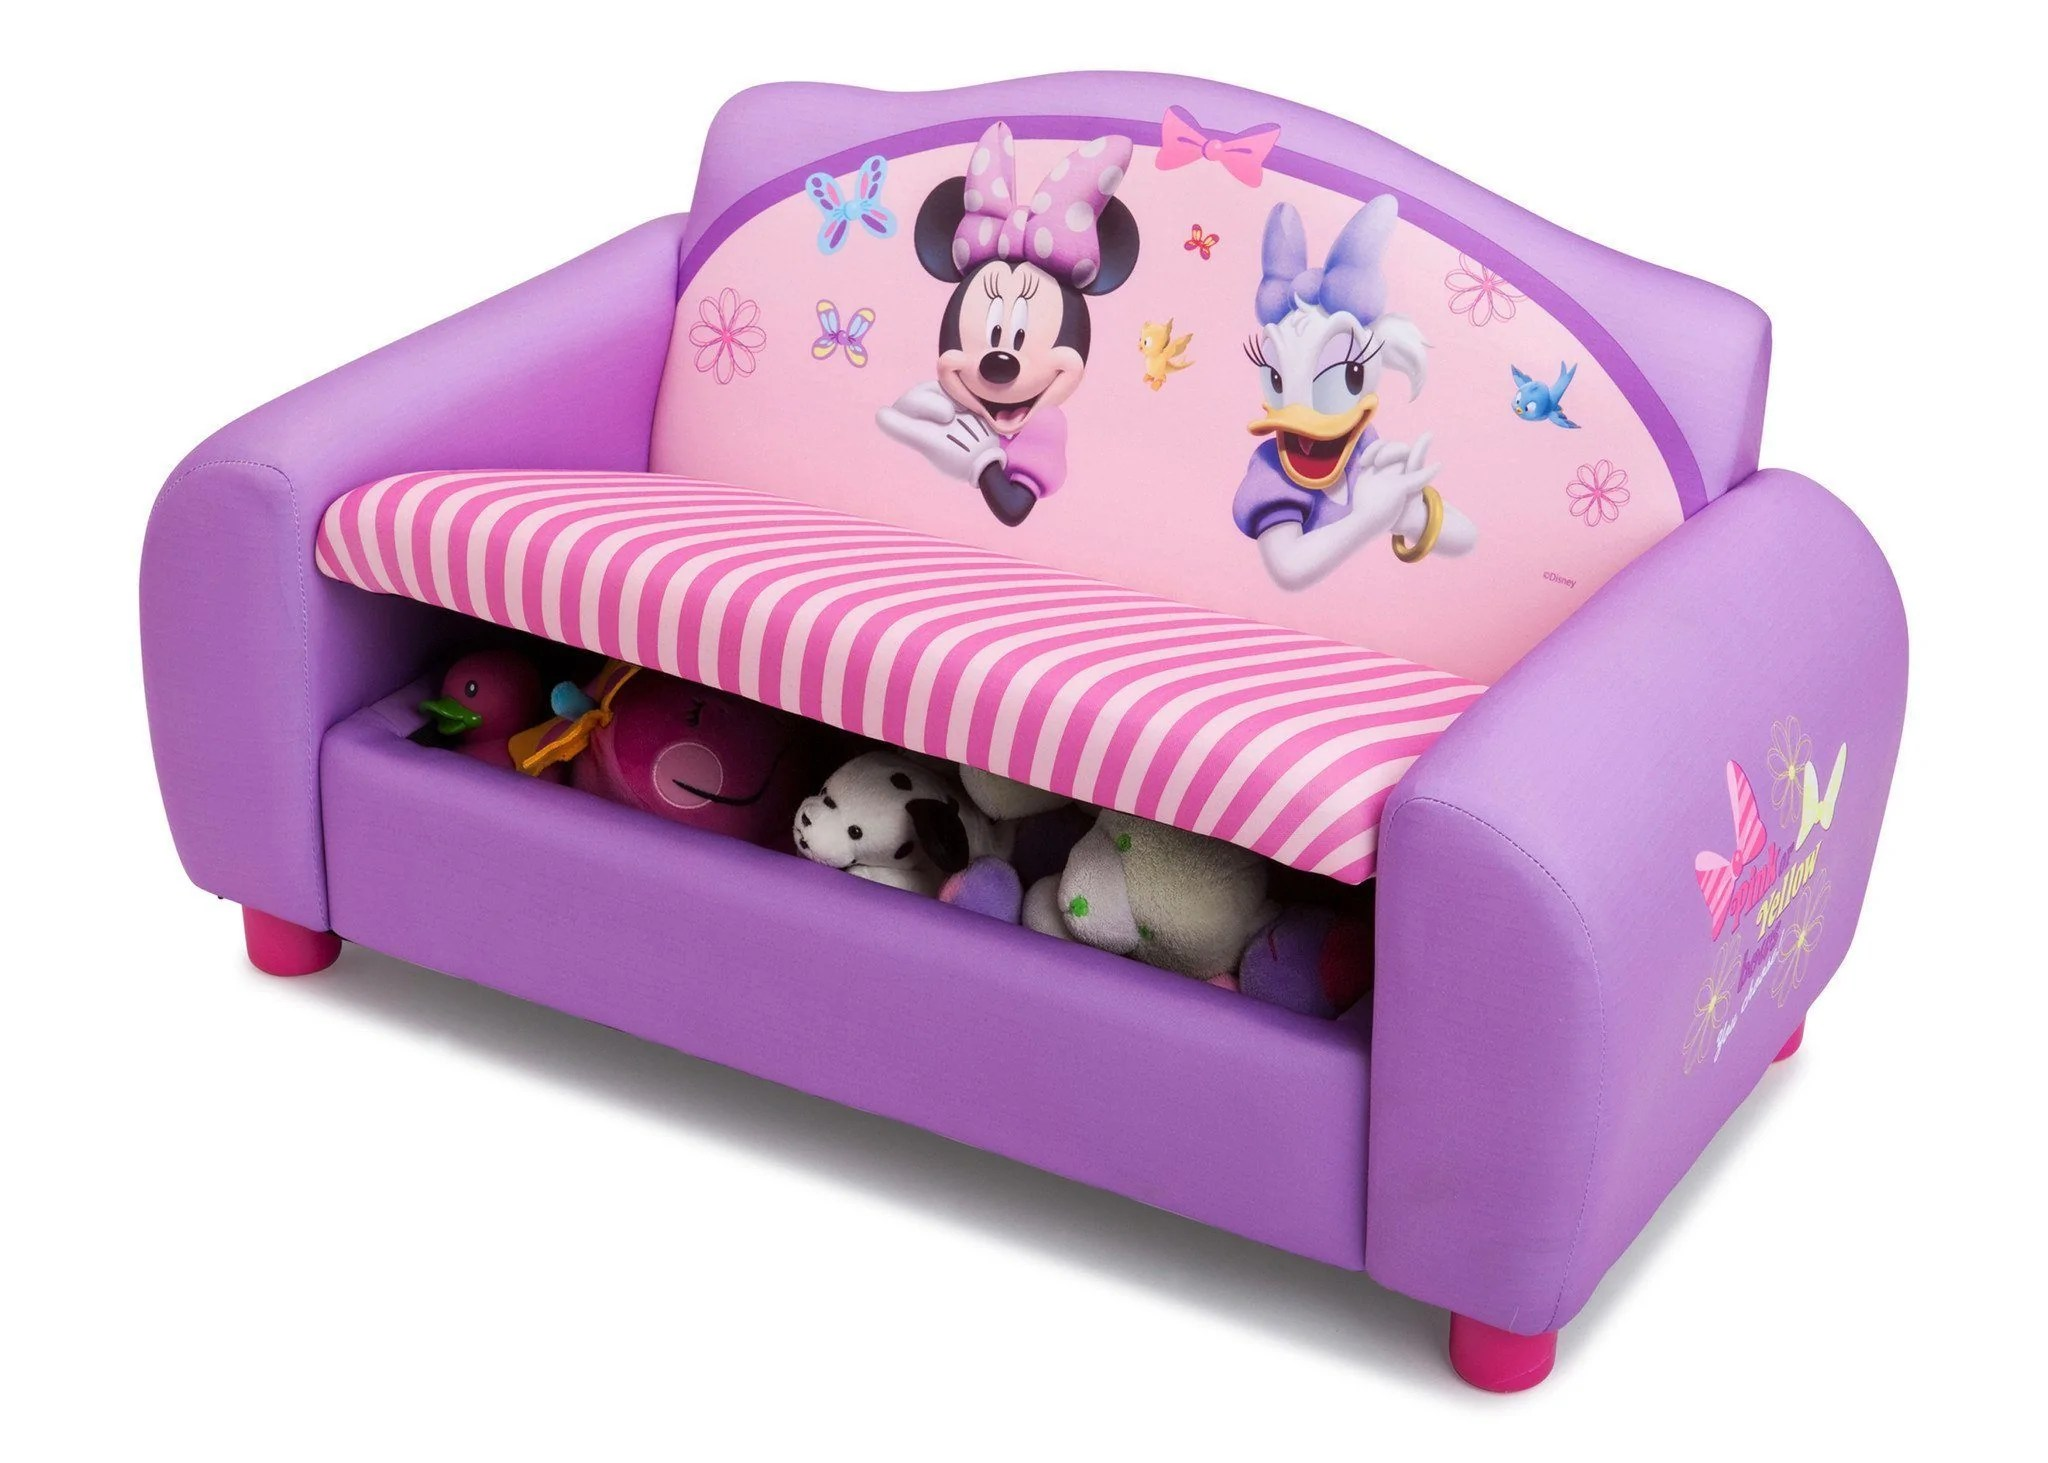 minnie mouse upholstered chair black covers wedding disney sofa with storage delta children